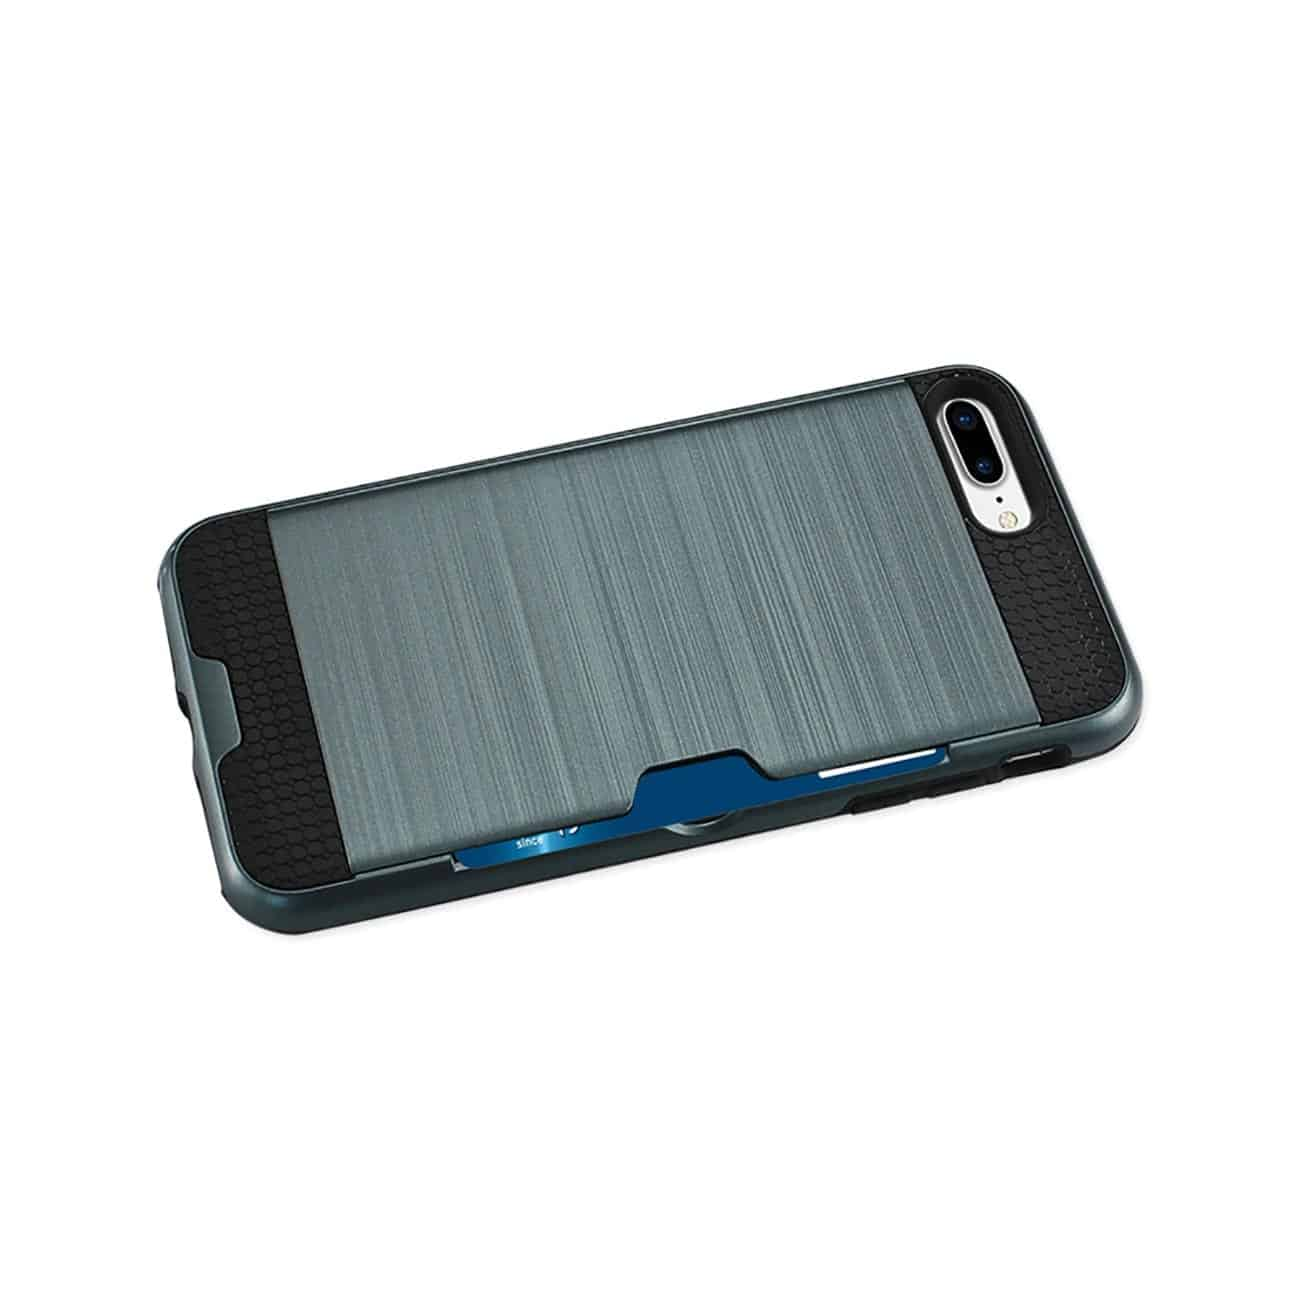 iPhone 8 Plus/ 7 Plus Slim Armor Hybrid Case With Card Holder In Navy